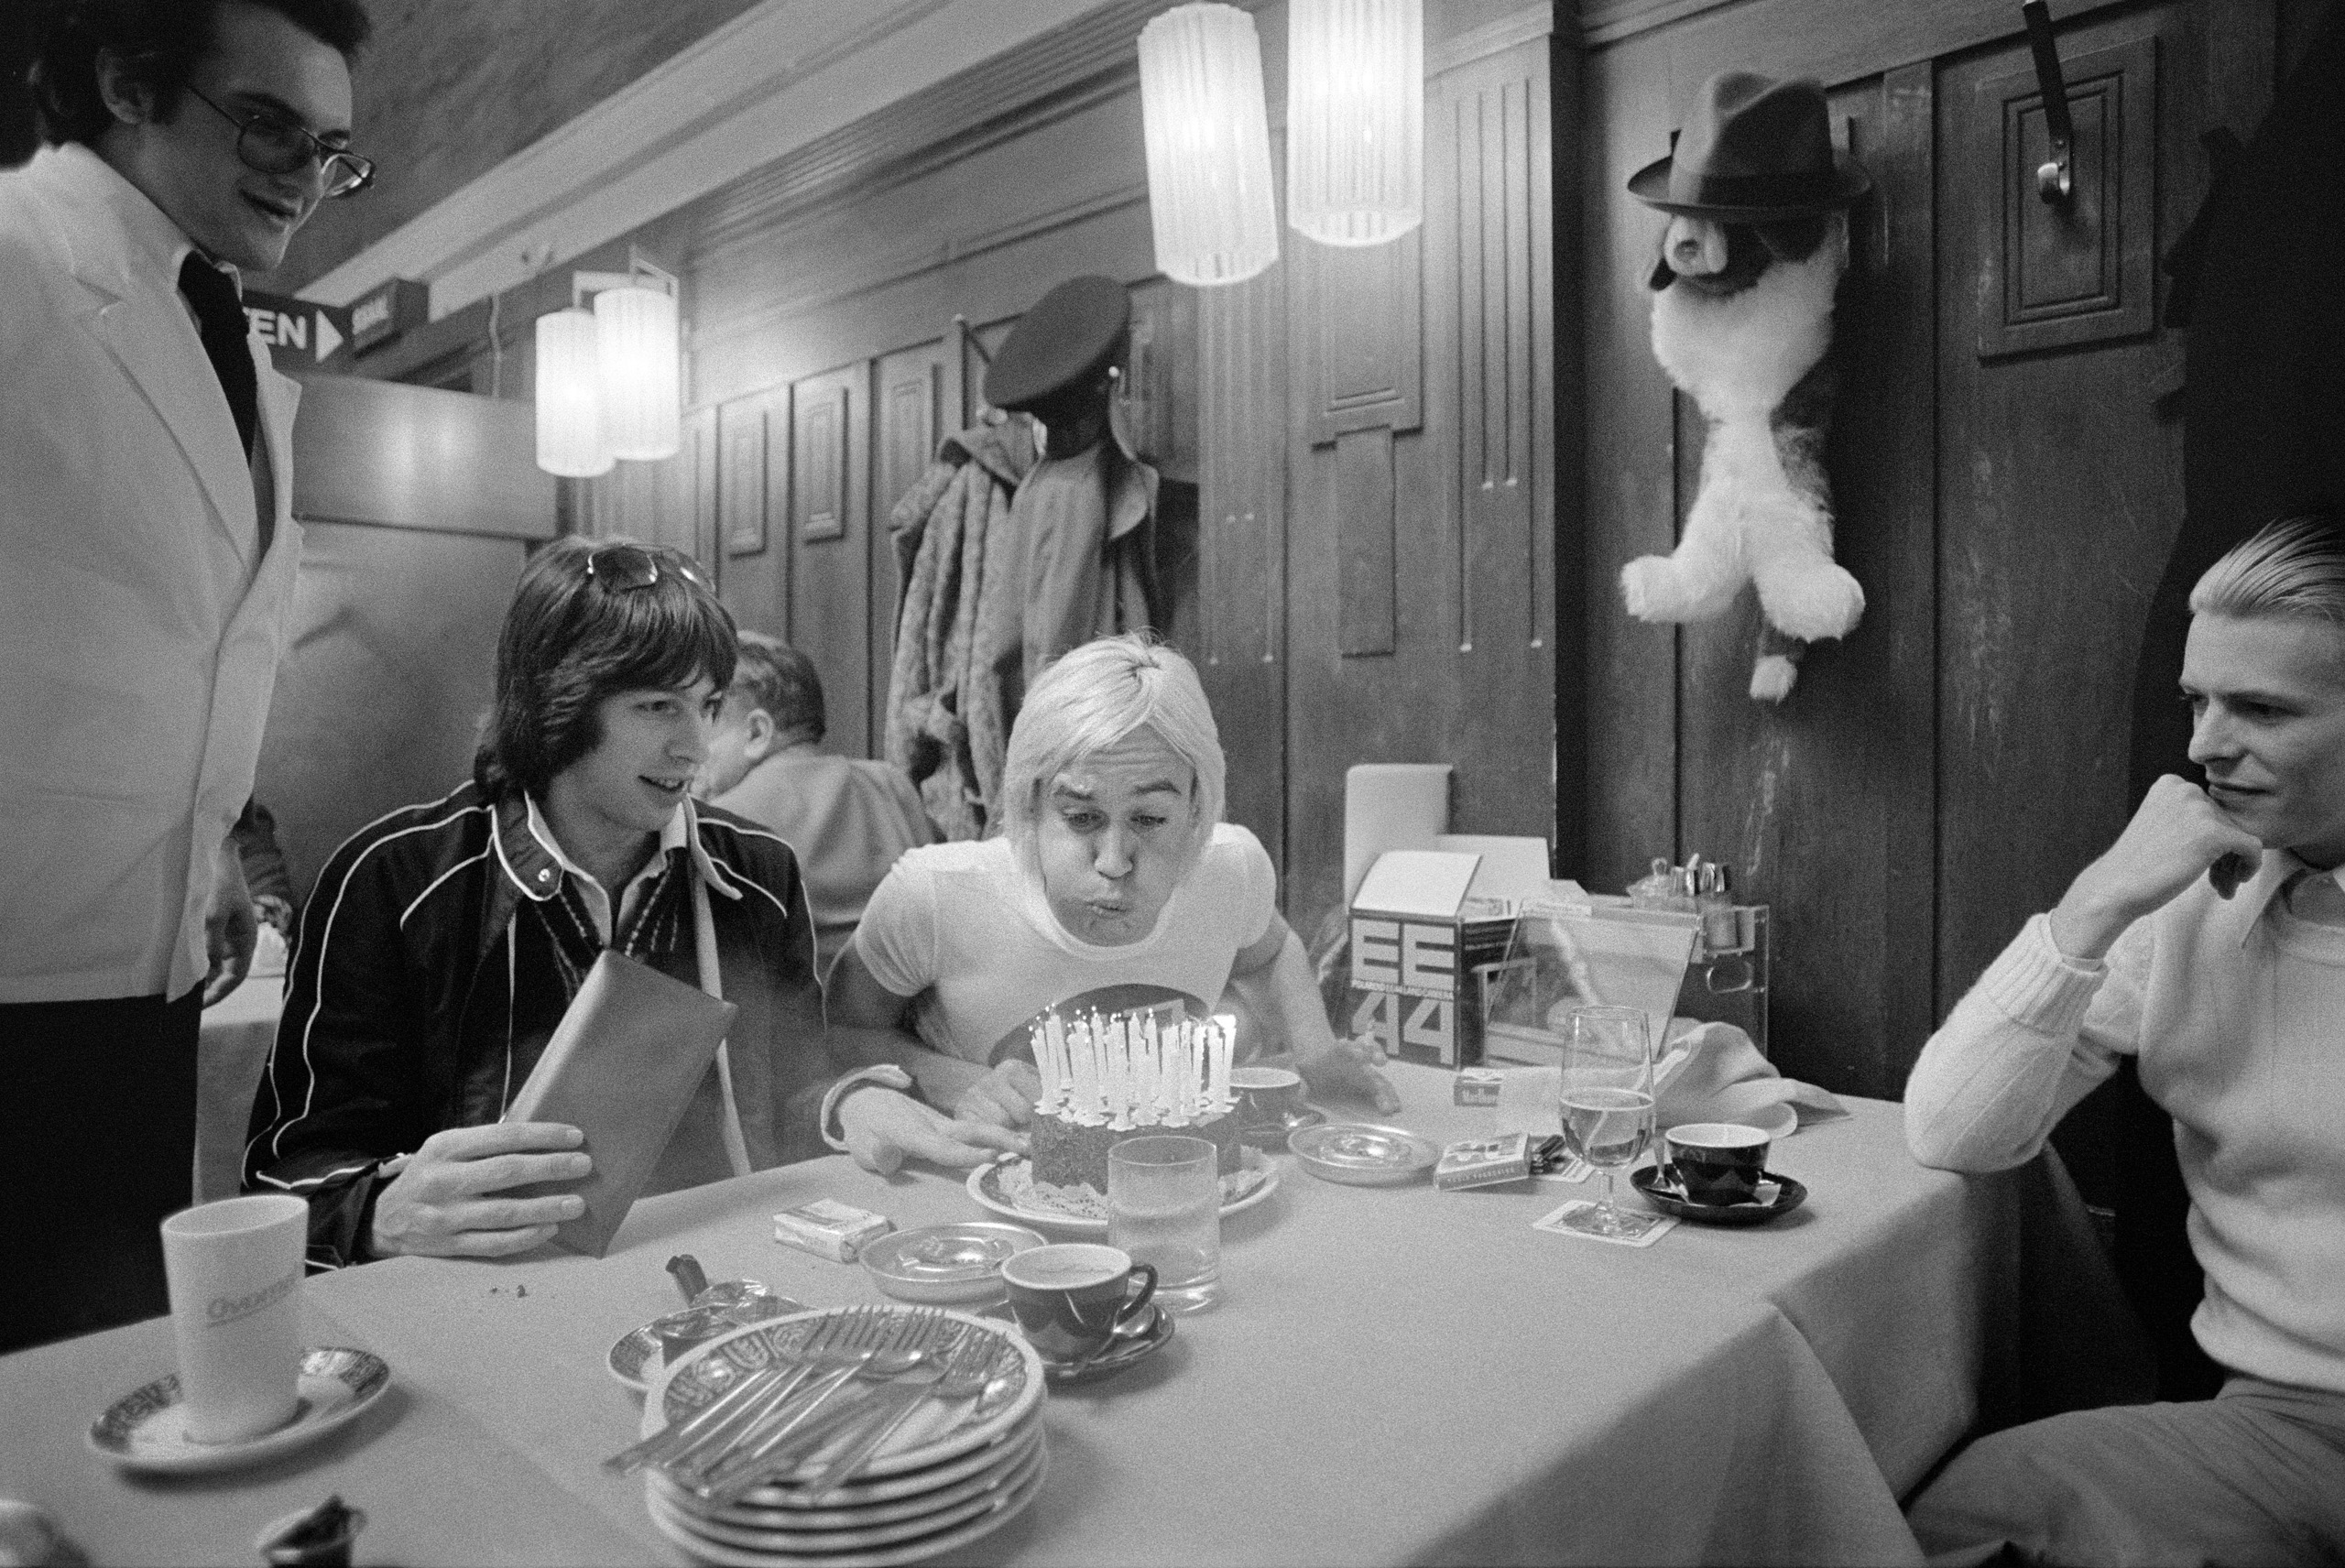 Iggy Pop blows out the candles on his birthday cake as Bowie and Pat Gibbons look on at a restaurant in Basel, Switzerland train depot prior to departing for the Soviet Union.